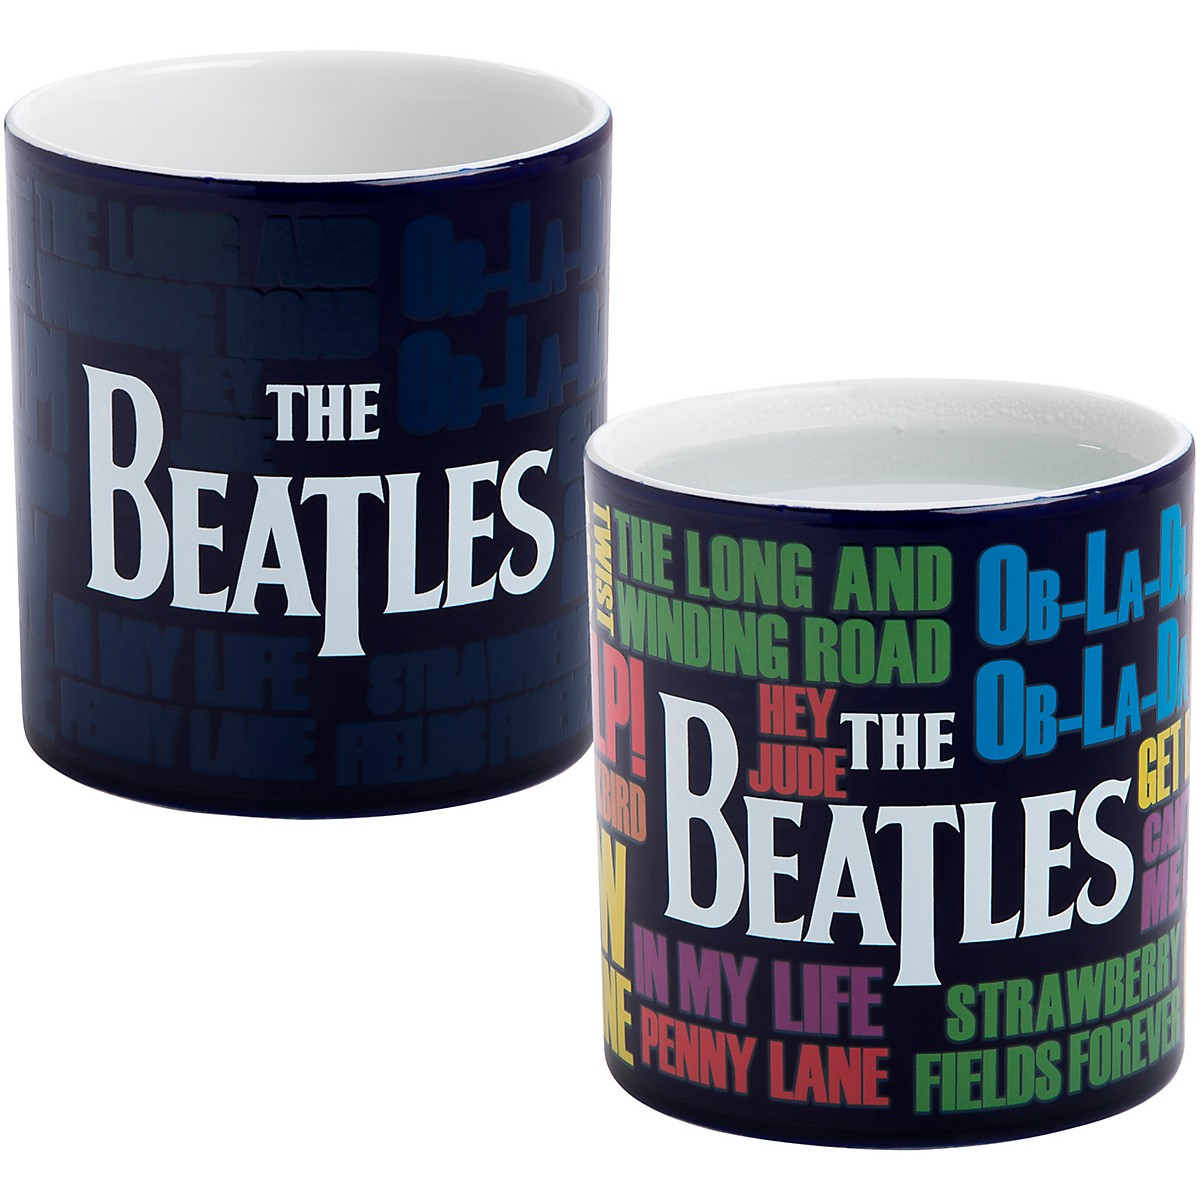 Vandor The Beatles Reactive 20 oz. Ceramic Mug